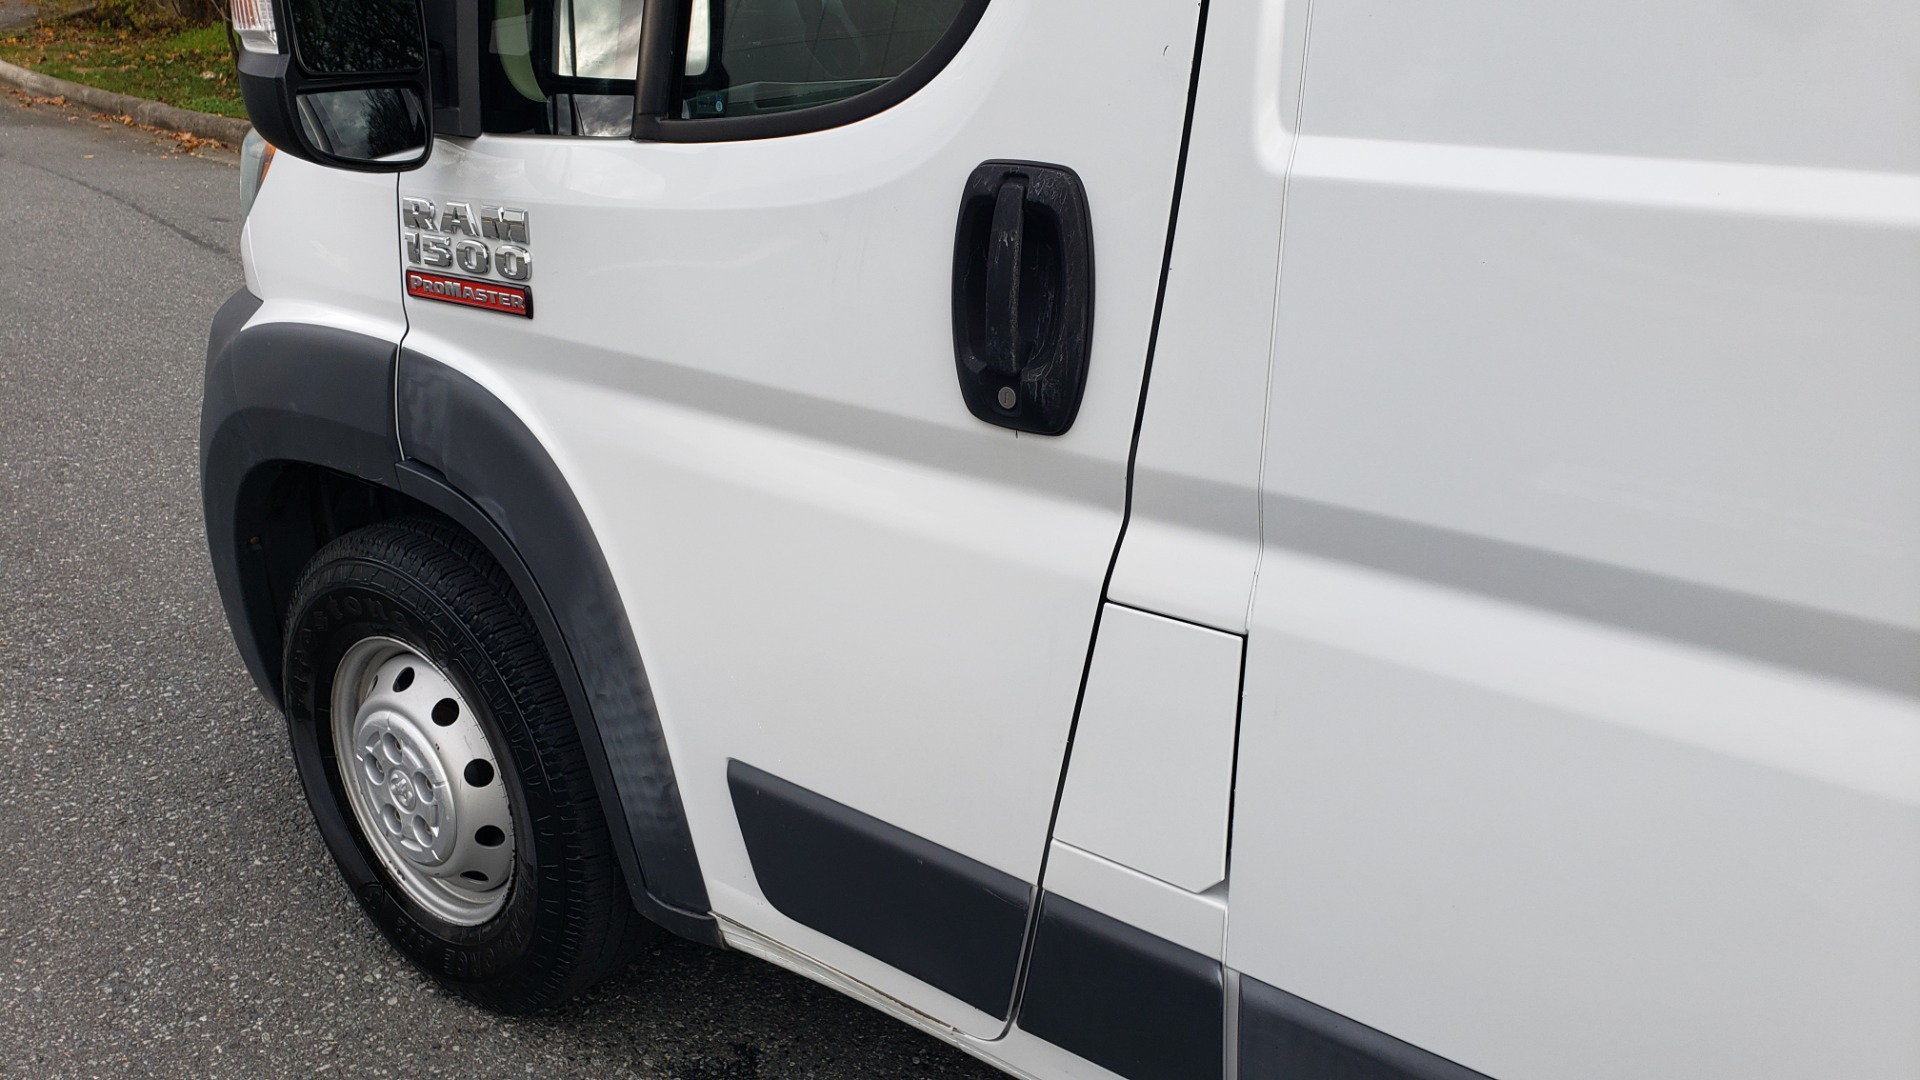 Used 2015 Ram PROMASTER CARGO VAN 136-INCH WB / LOW ROOF / LADDER RACK / INSIDE RACKS for sale $16,995 at Formula Imports in Charlotte NC 28227 7